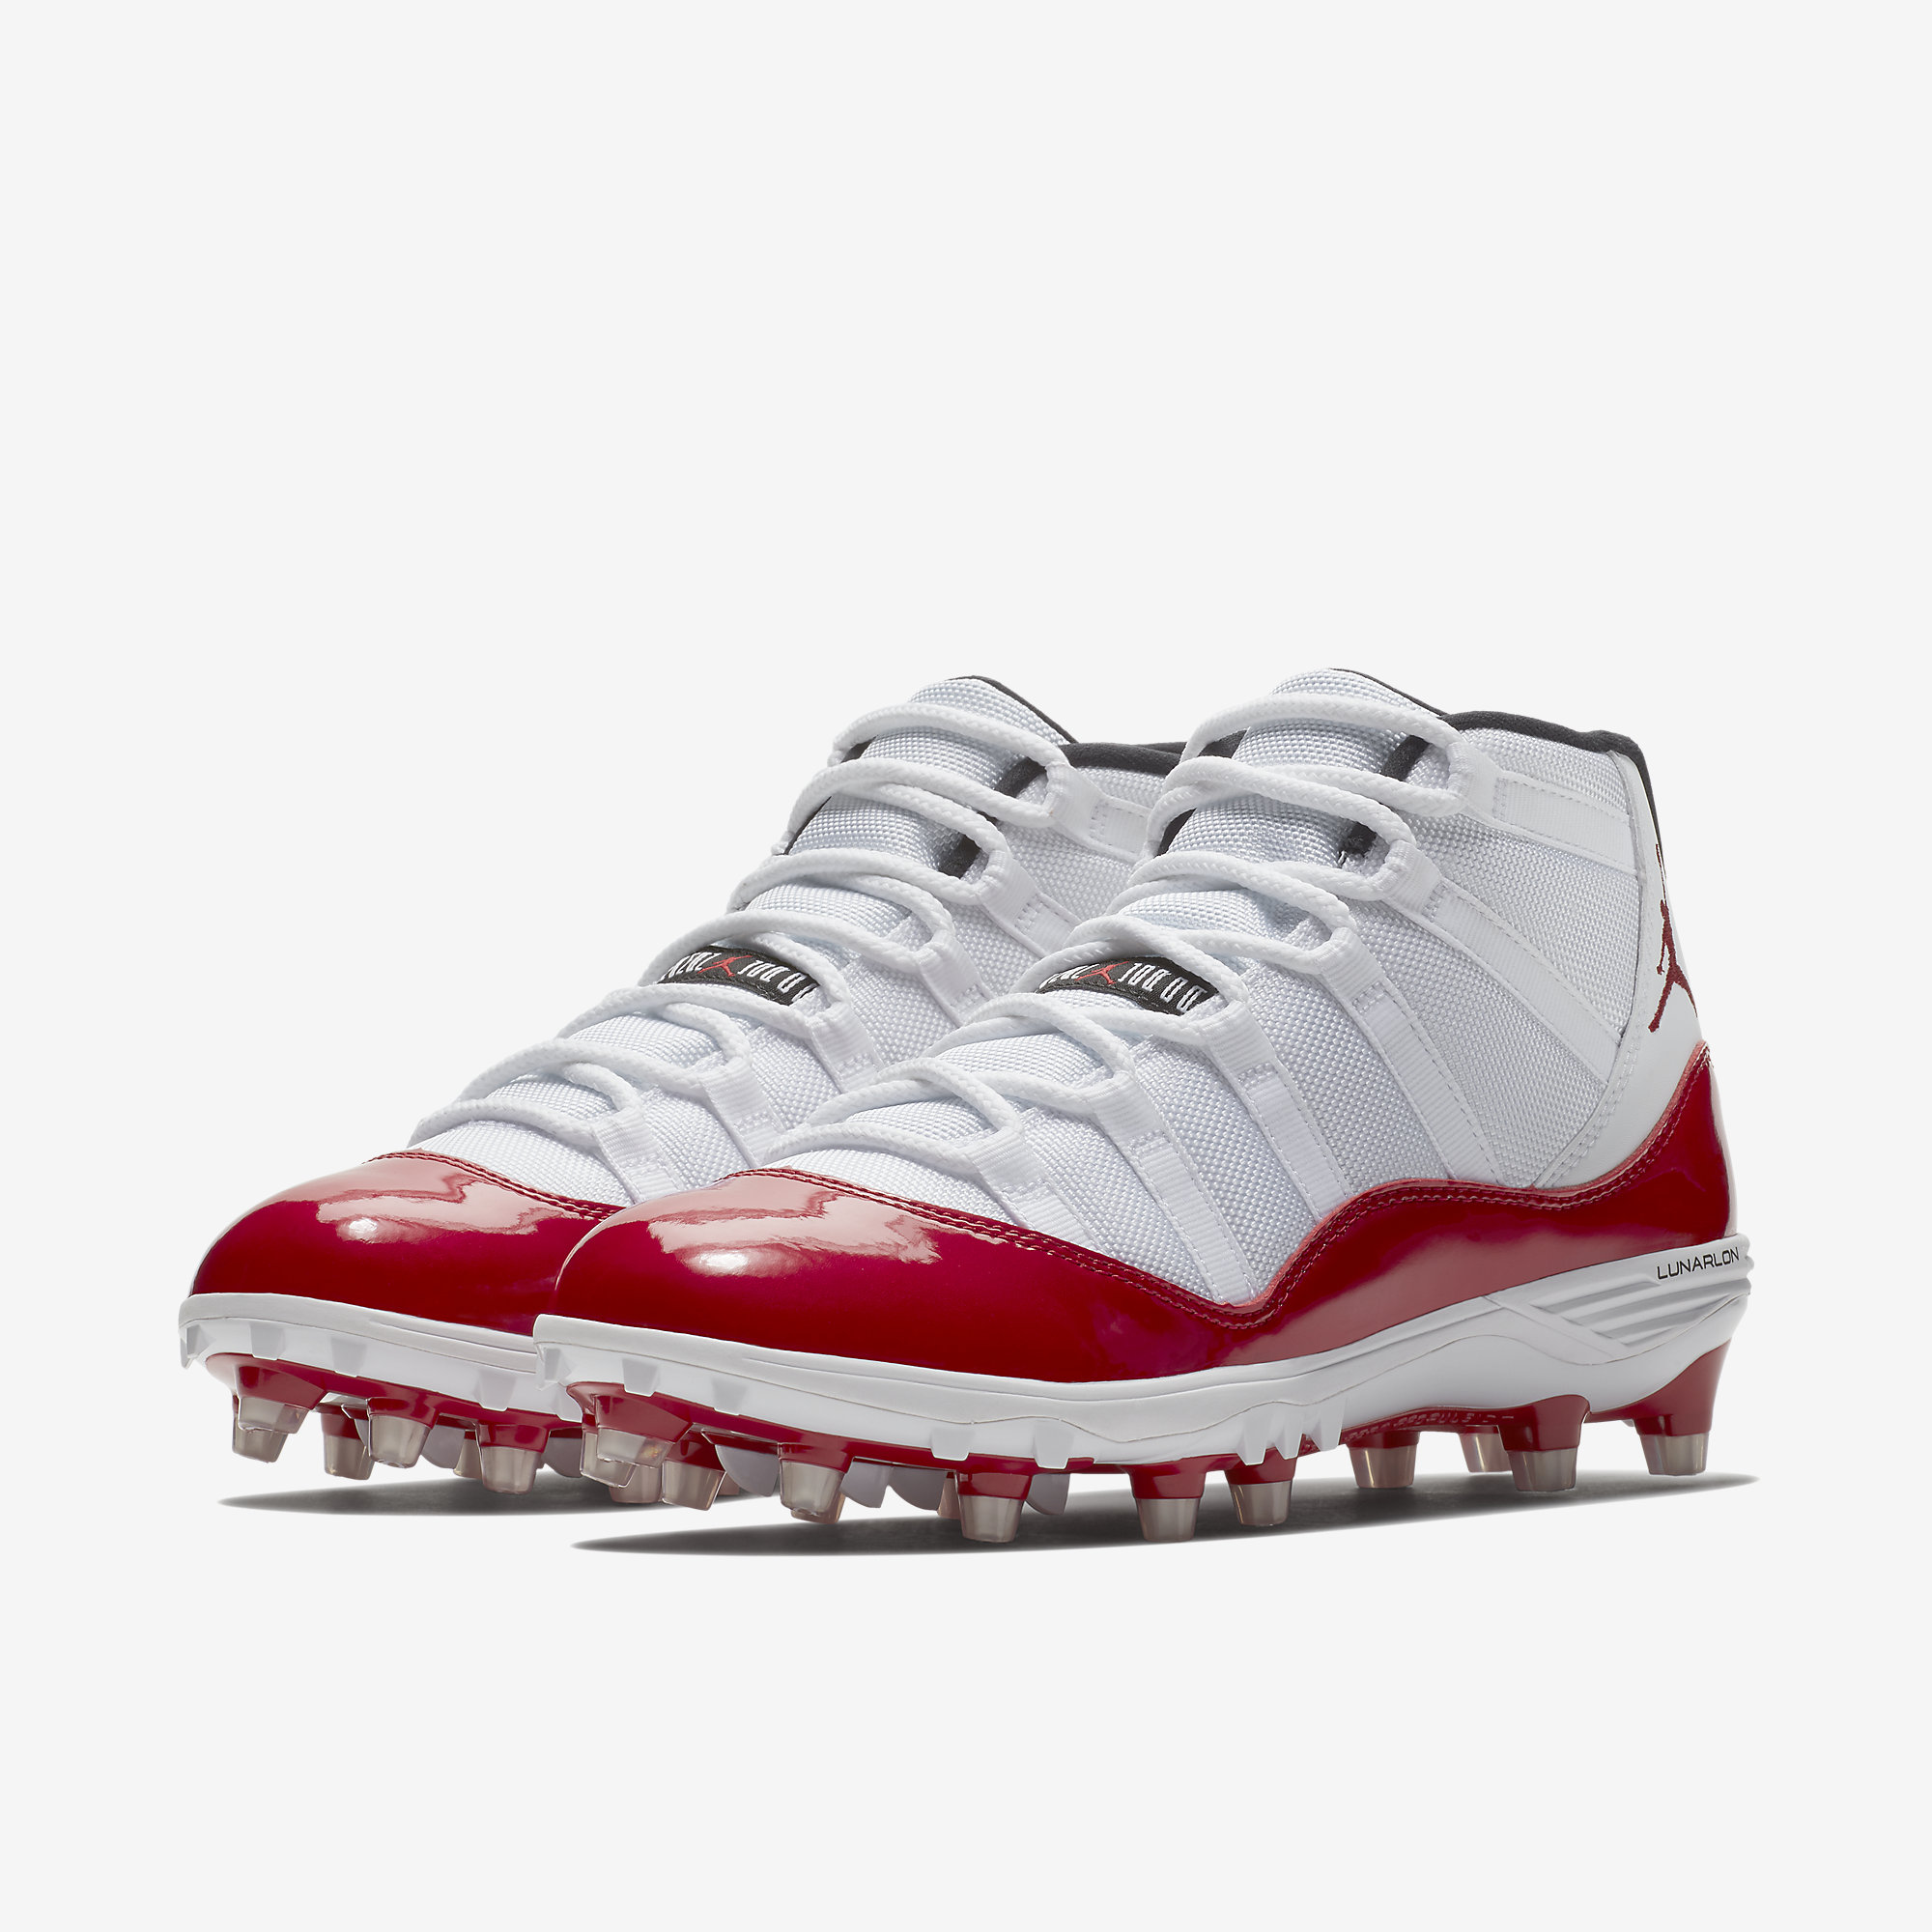 JORDAN XI RETRO TD Mens cleats AO1561-101